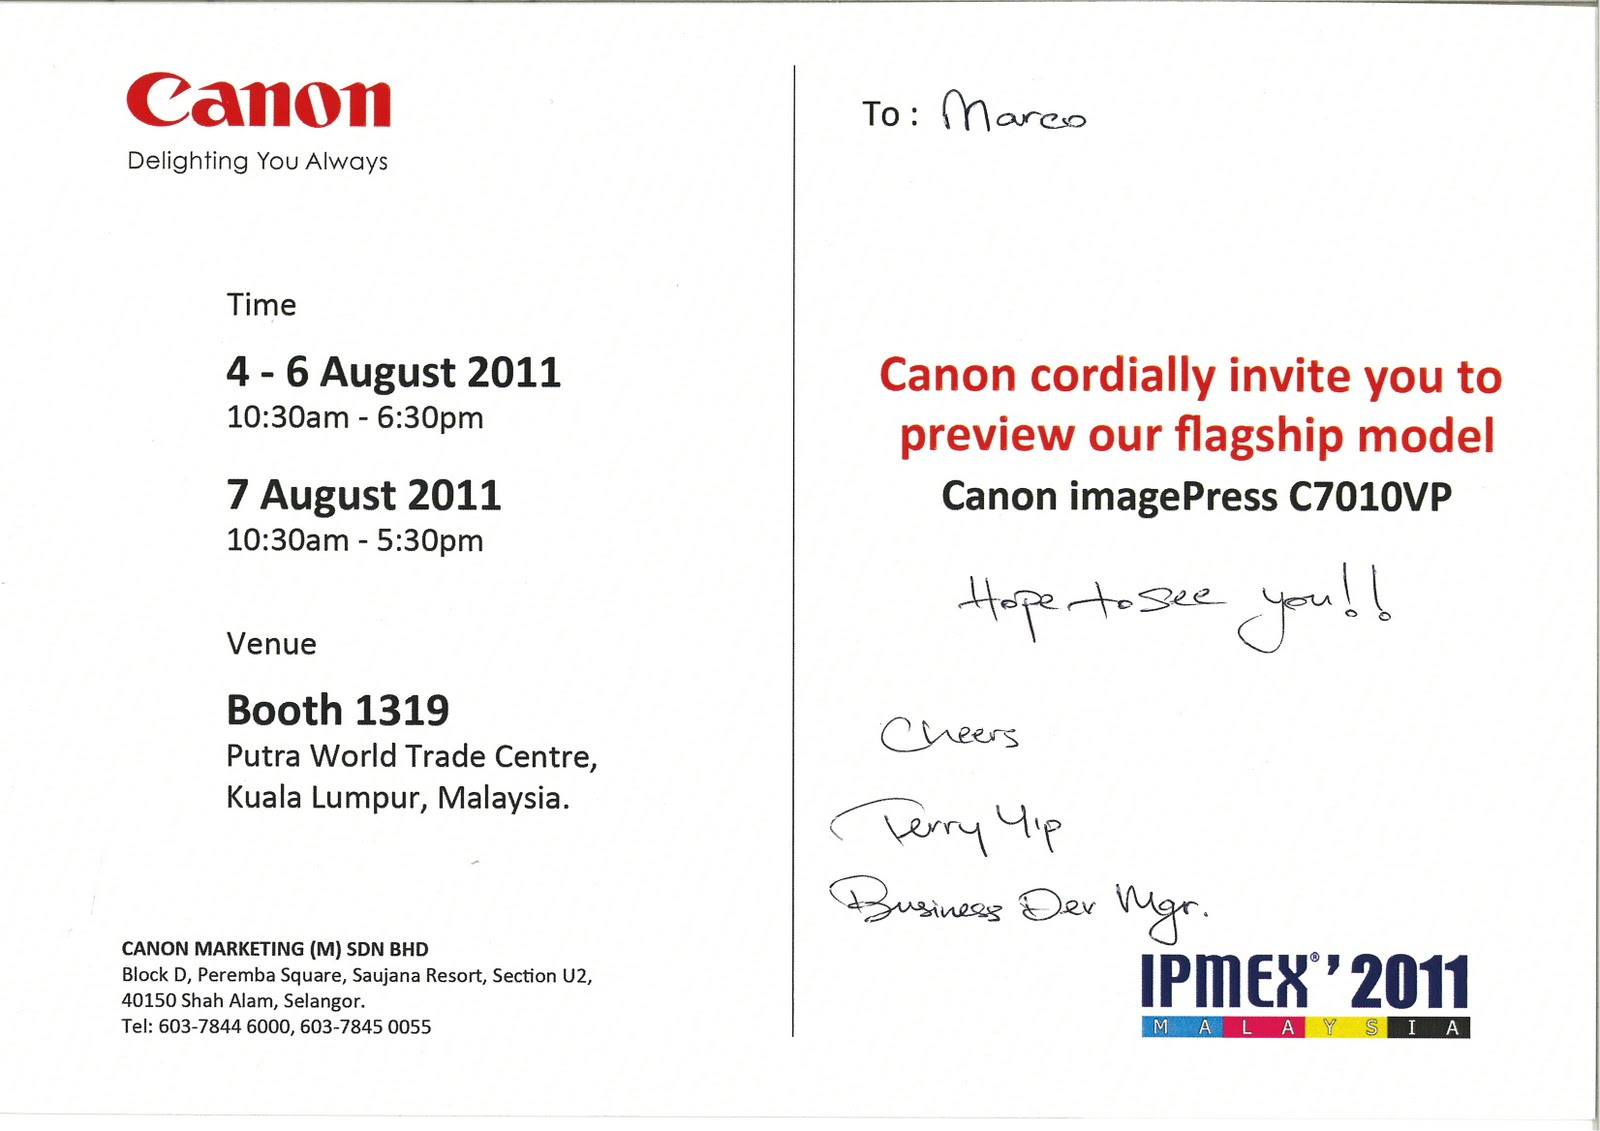 Large format printers industrial ink jet printers reviews august 2011 ipmex 2011 invitation from canon marketing malaysia sdn bhd stopboris Gallery